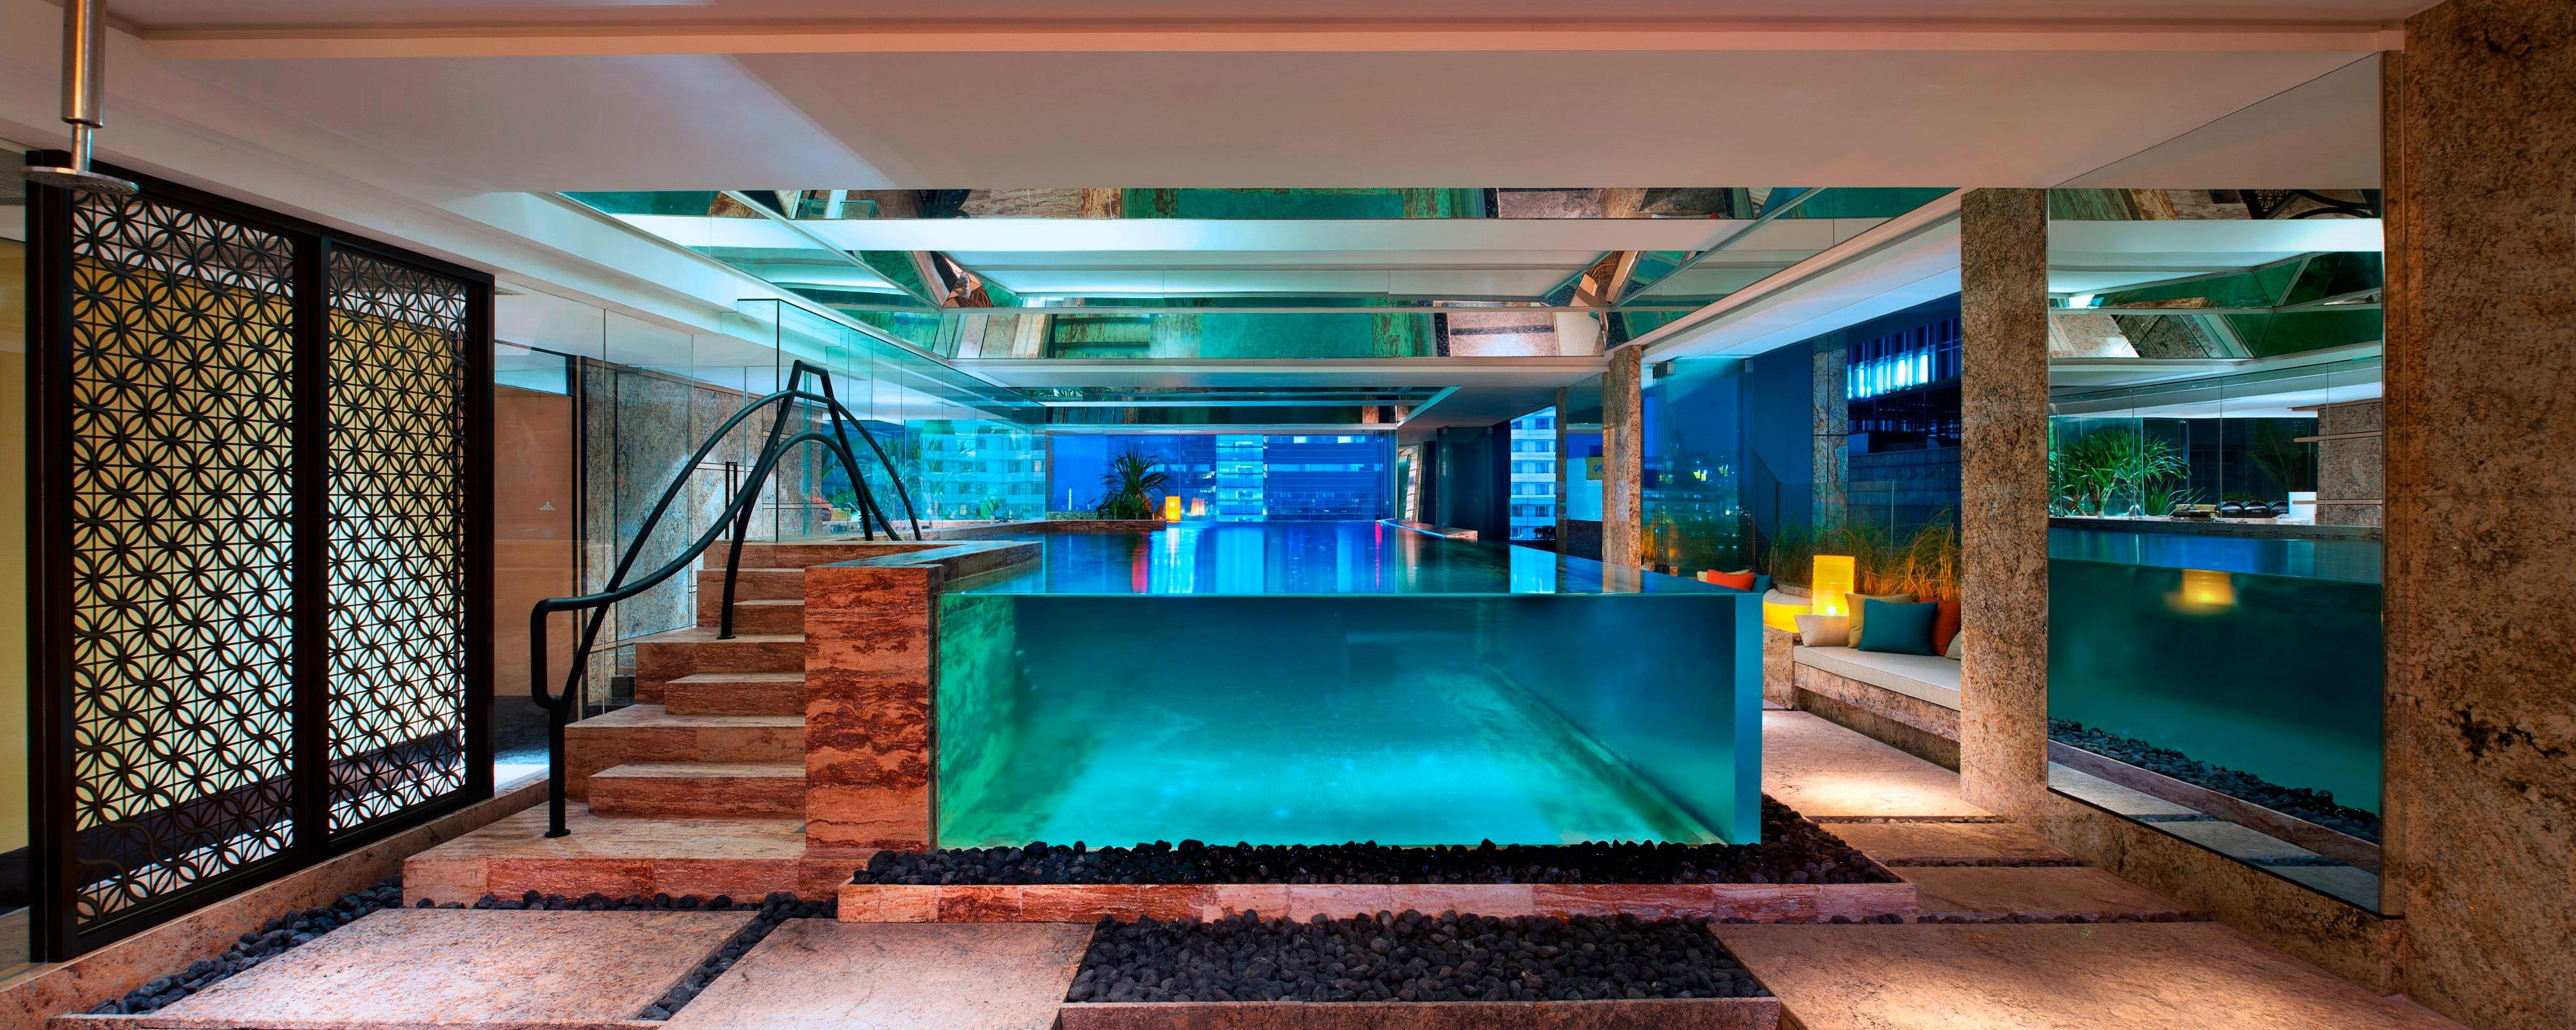 Swimming Pool overlooKing city View